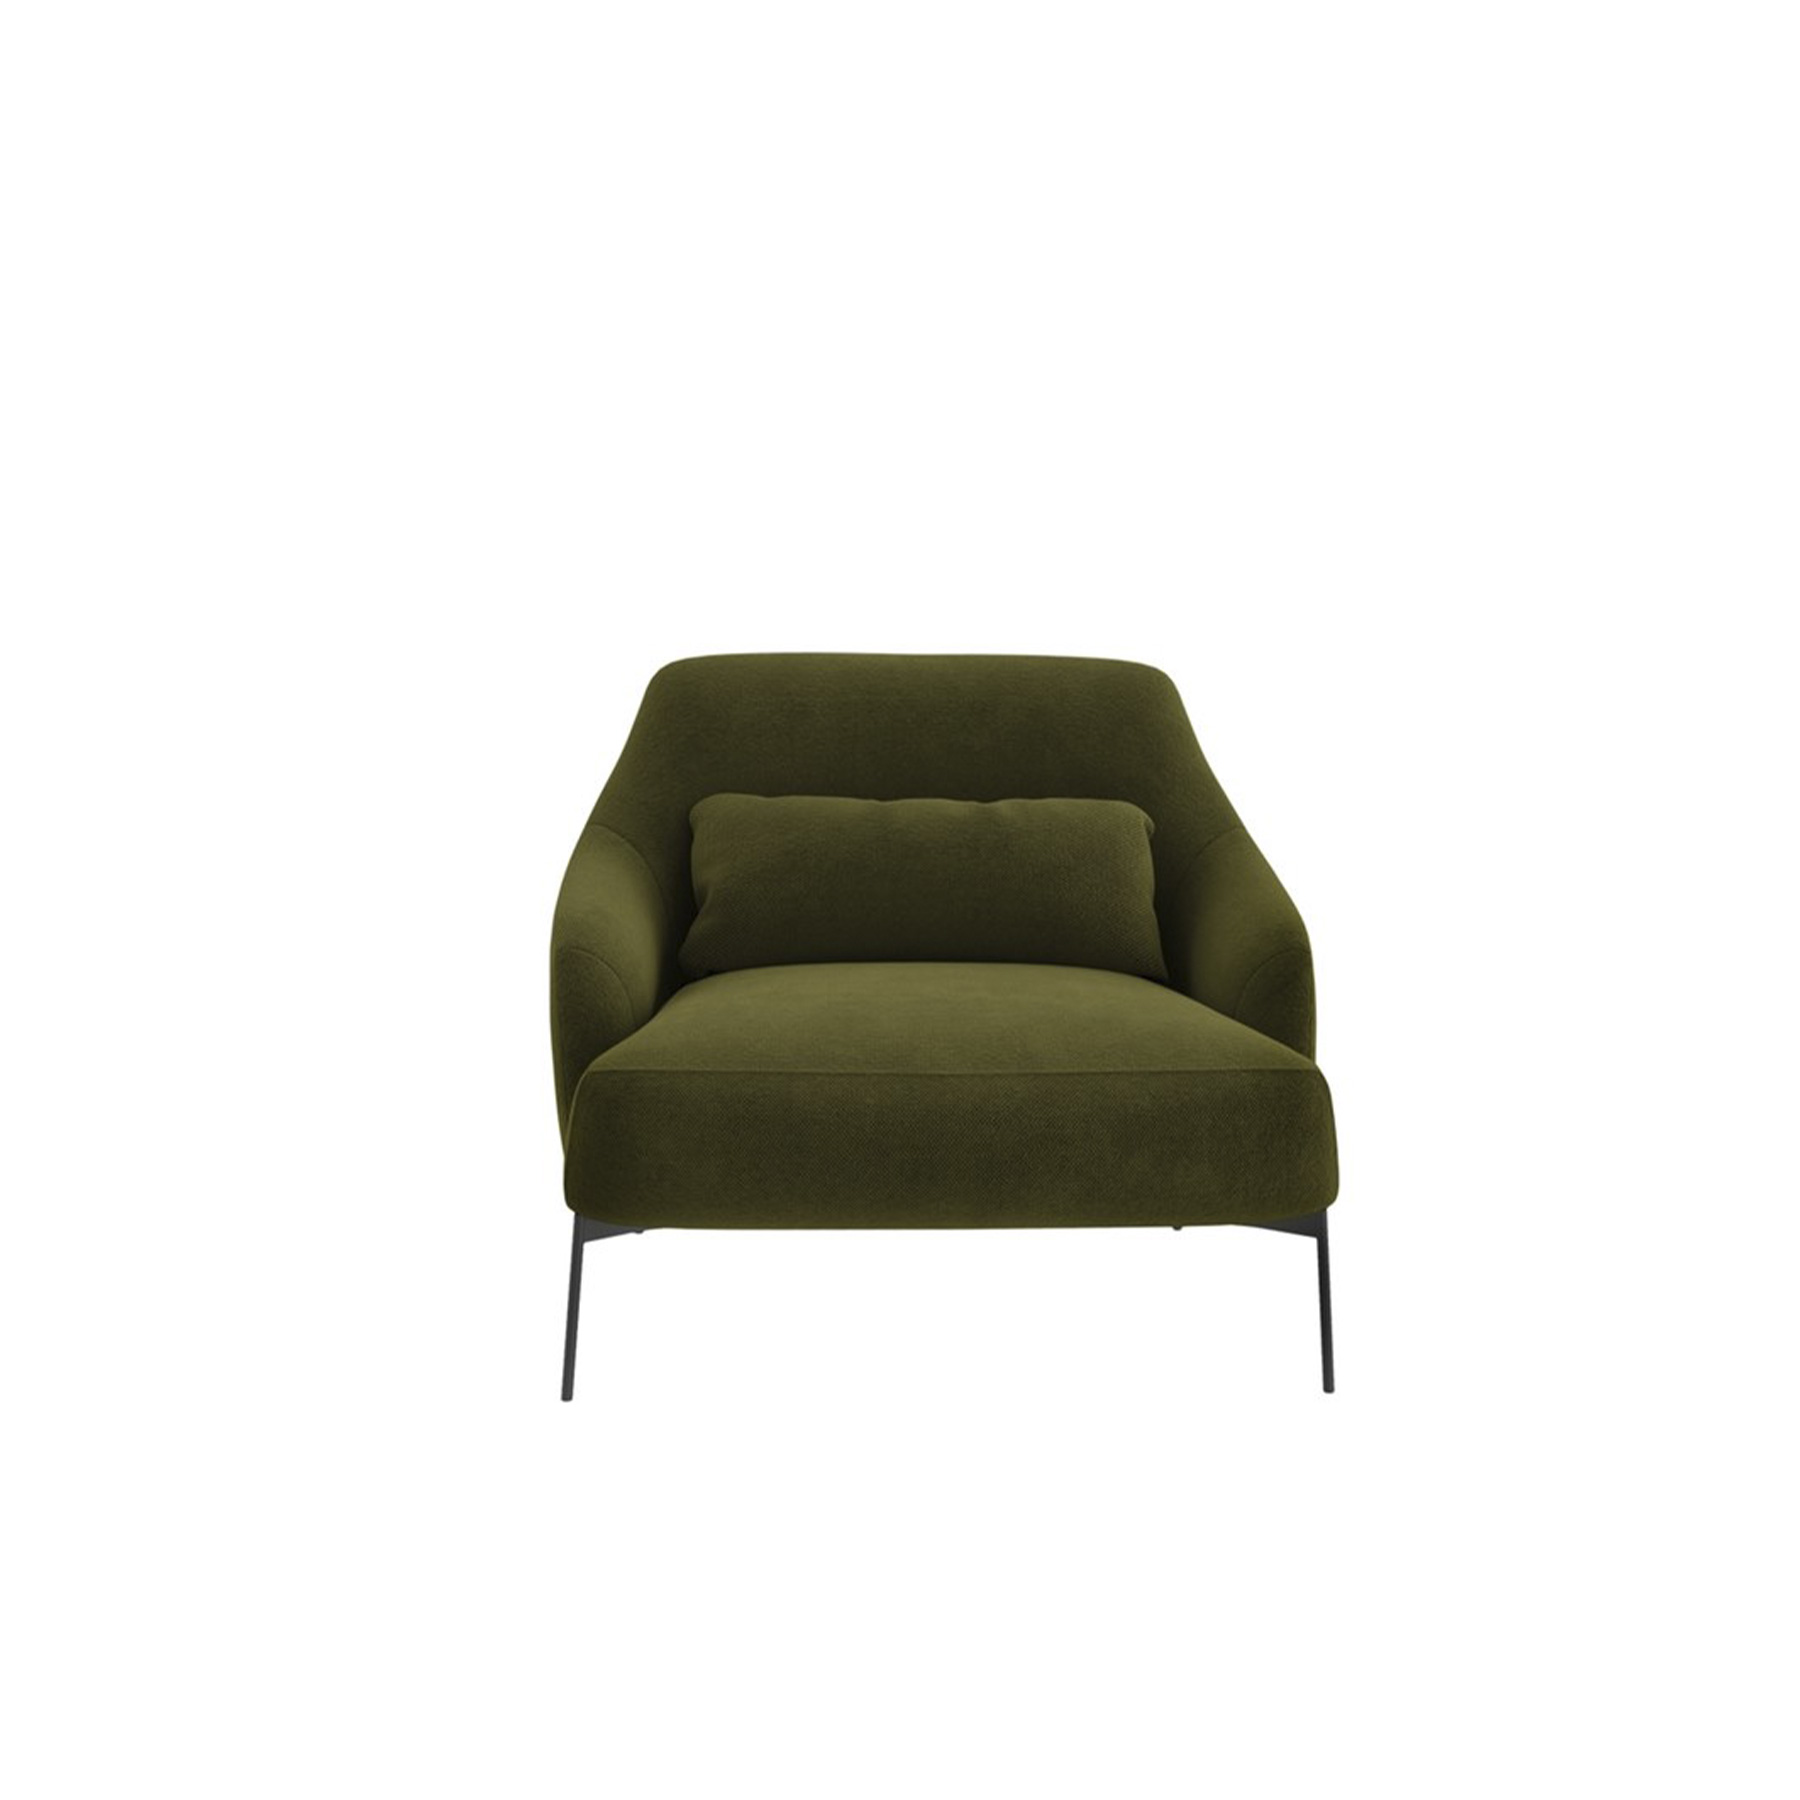 Lima Lounge Armchair - A system consisting of sofas and armchairs in different sizes, with a markedly sleek shape to receive the body nicely.‎ Extra comfort is given by the large lumbar supporting cushion on the ample seat.‎ Elegantly thin are the feet at the base of the frame, adding a touch of dynamism to the cosiness.‎